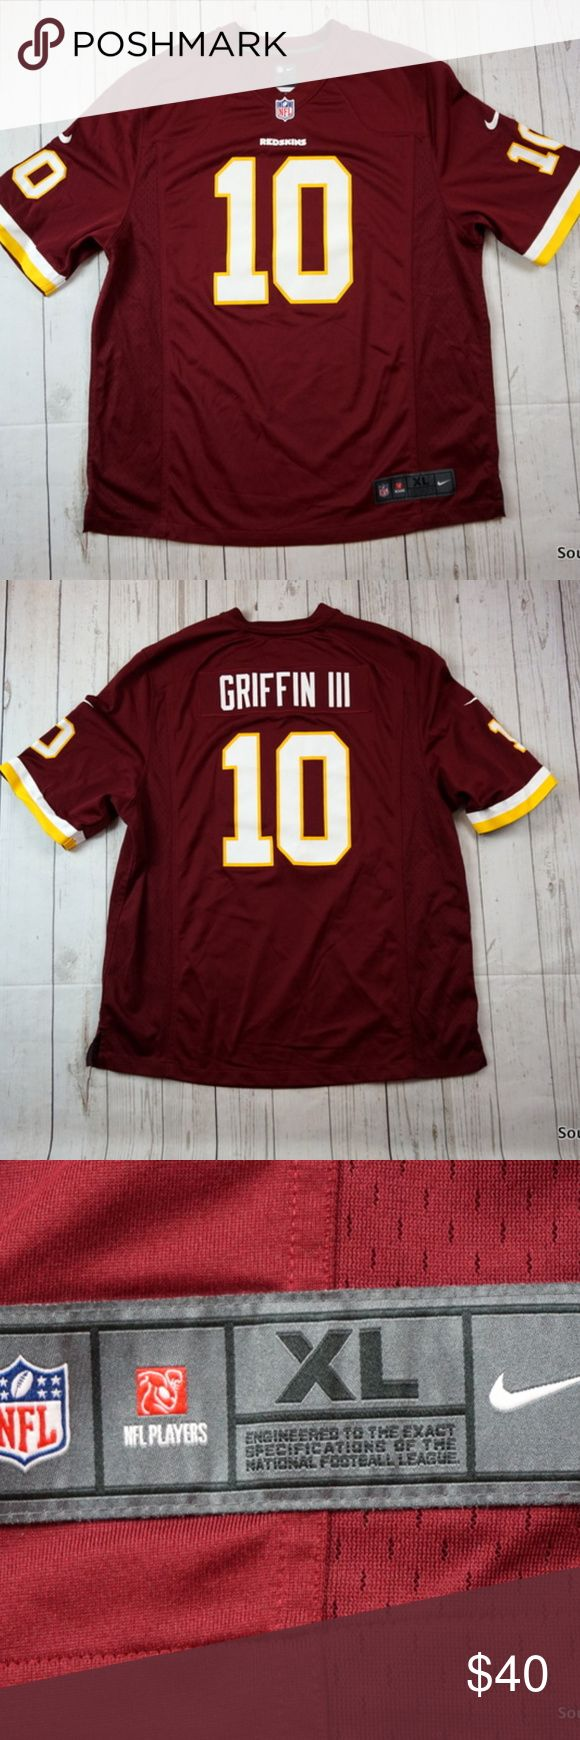 "Robert Griffin III Washington Redskins Nike Jersey Brand: Nike On Field Size: Men's XL Material: Polyester  Detailed Measurements: (Front Side of Garment has been measured laying flat on a table)  Sleeves:              14.5"" inches Chest:                  25"" inches Length:                33.5"" inches  In good used shape and well cared for, ships in 1 business day or less from a clean and smoke free environment. Thanks! Nike Shirts Tank Tops"